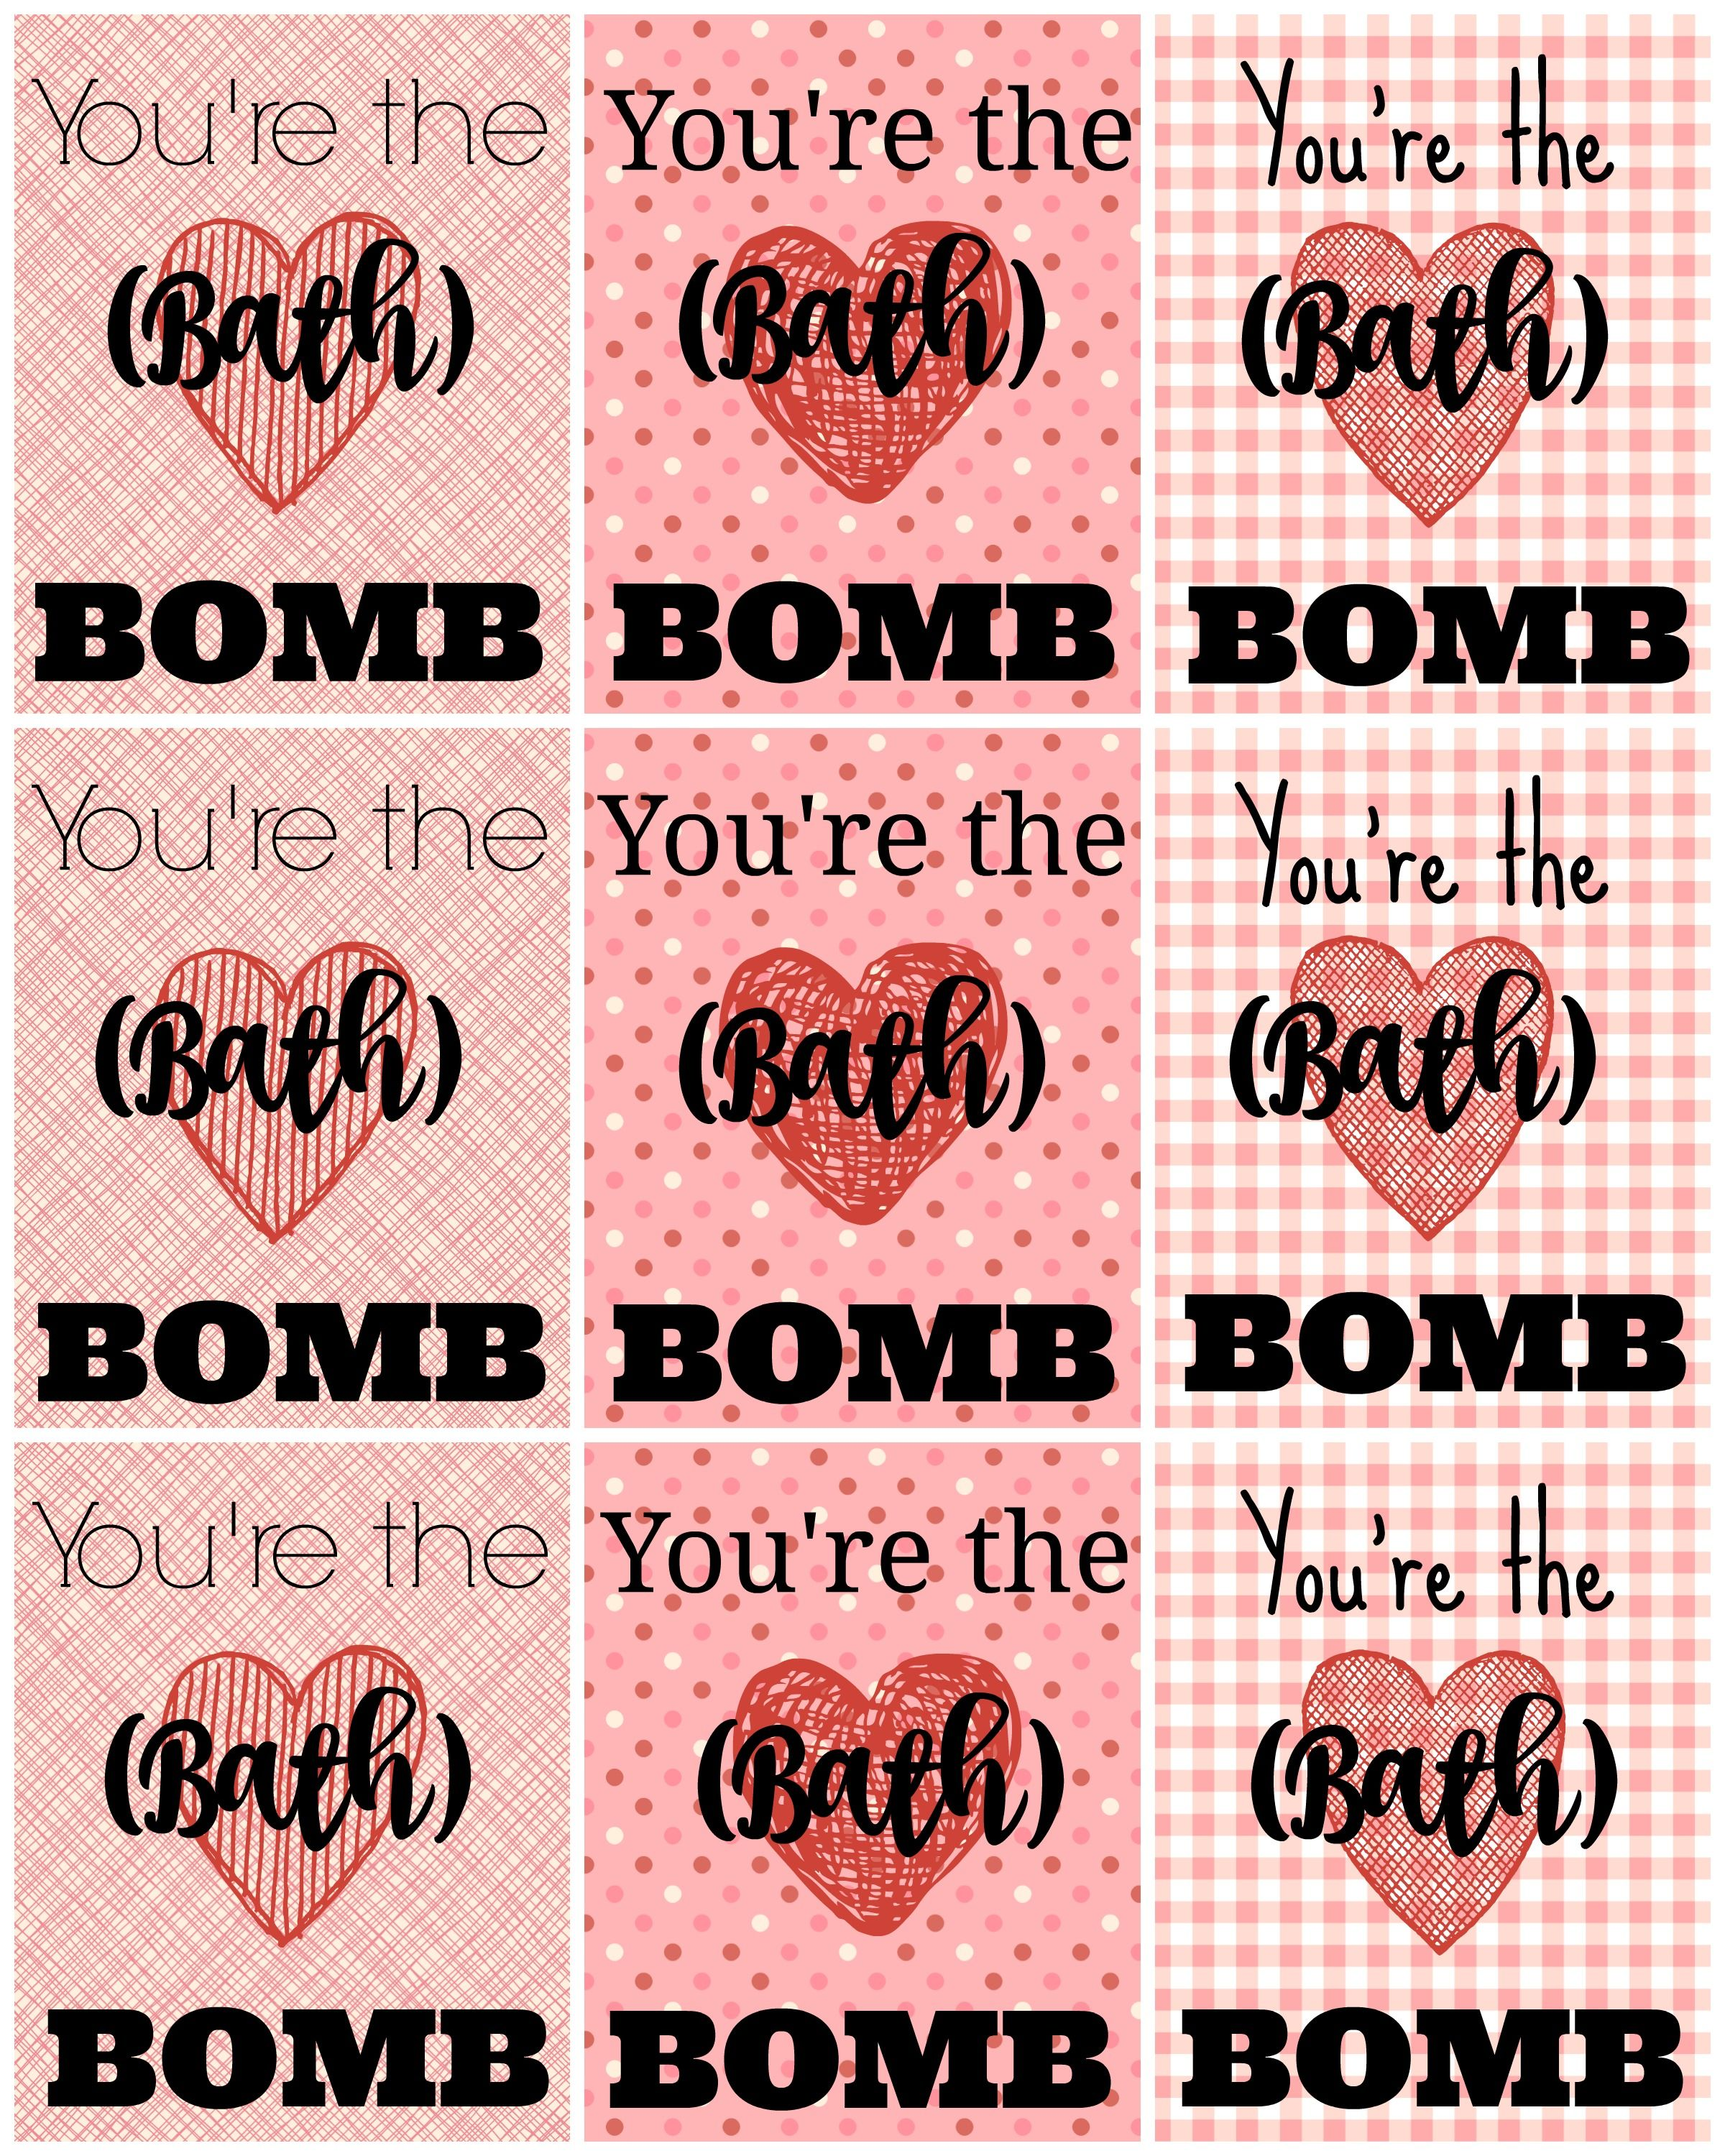 Free Printable Bath Bomb Tag Templates: Bath Bomb Printable Gift TAGS! My Daughter Was Giving Out